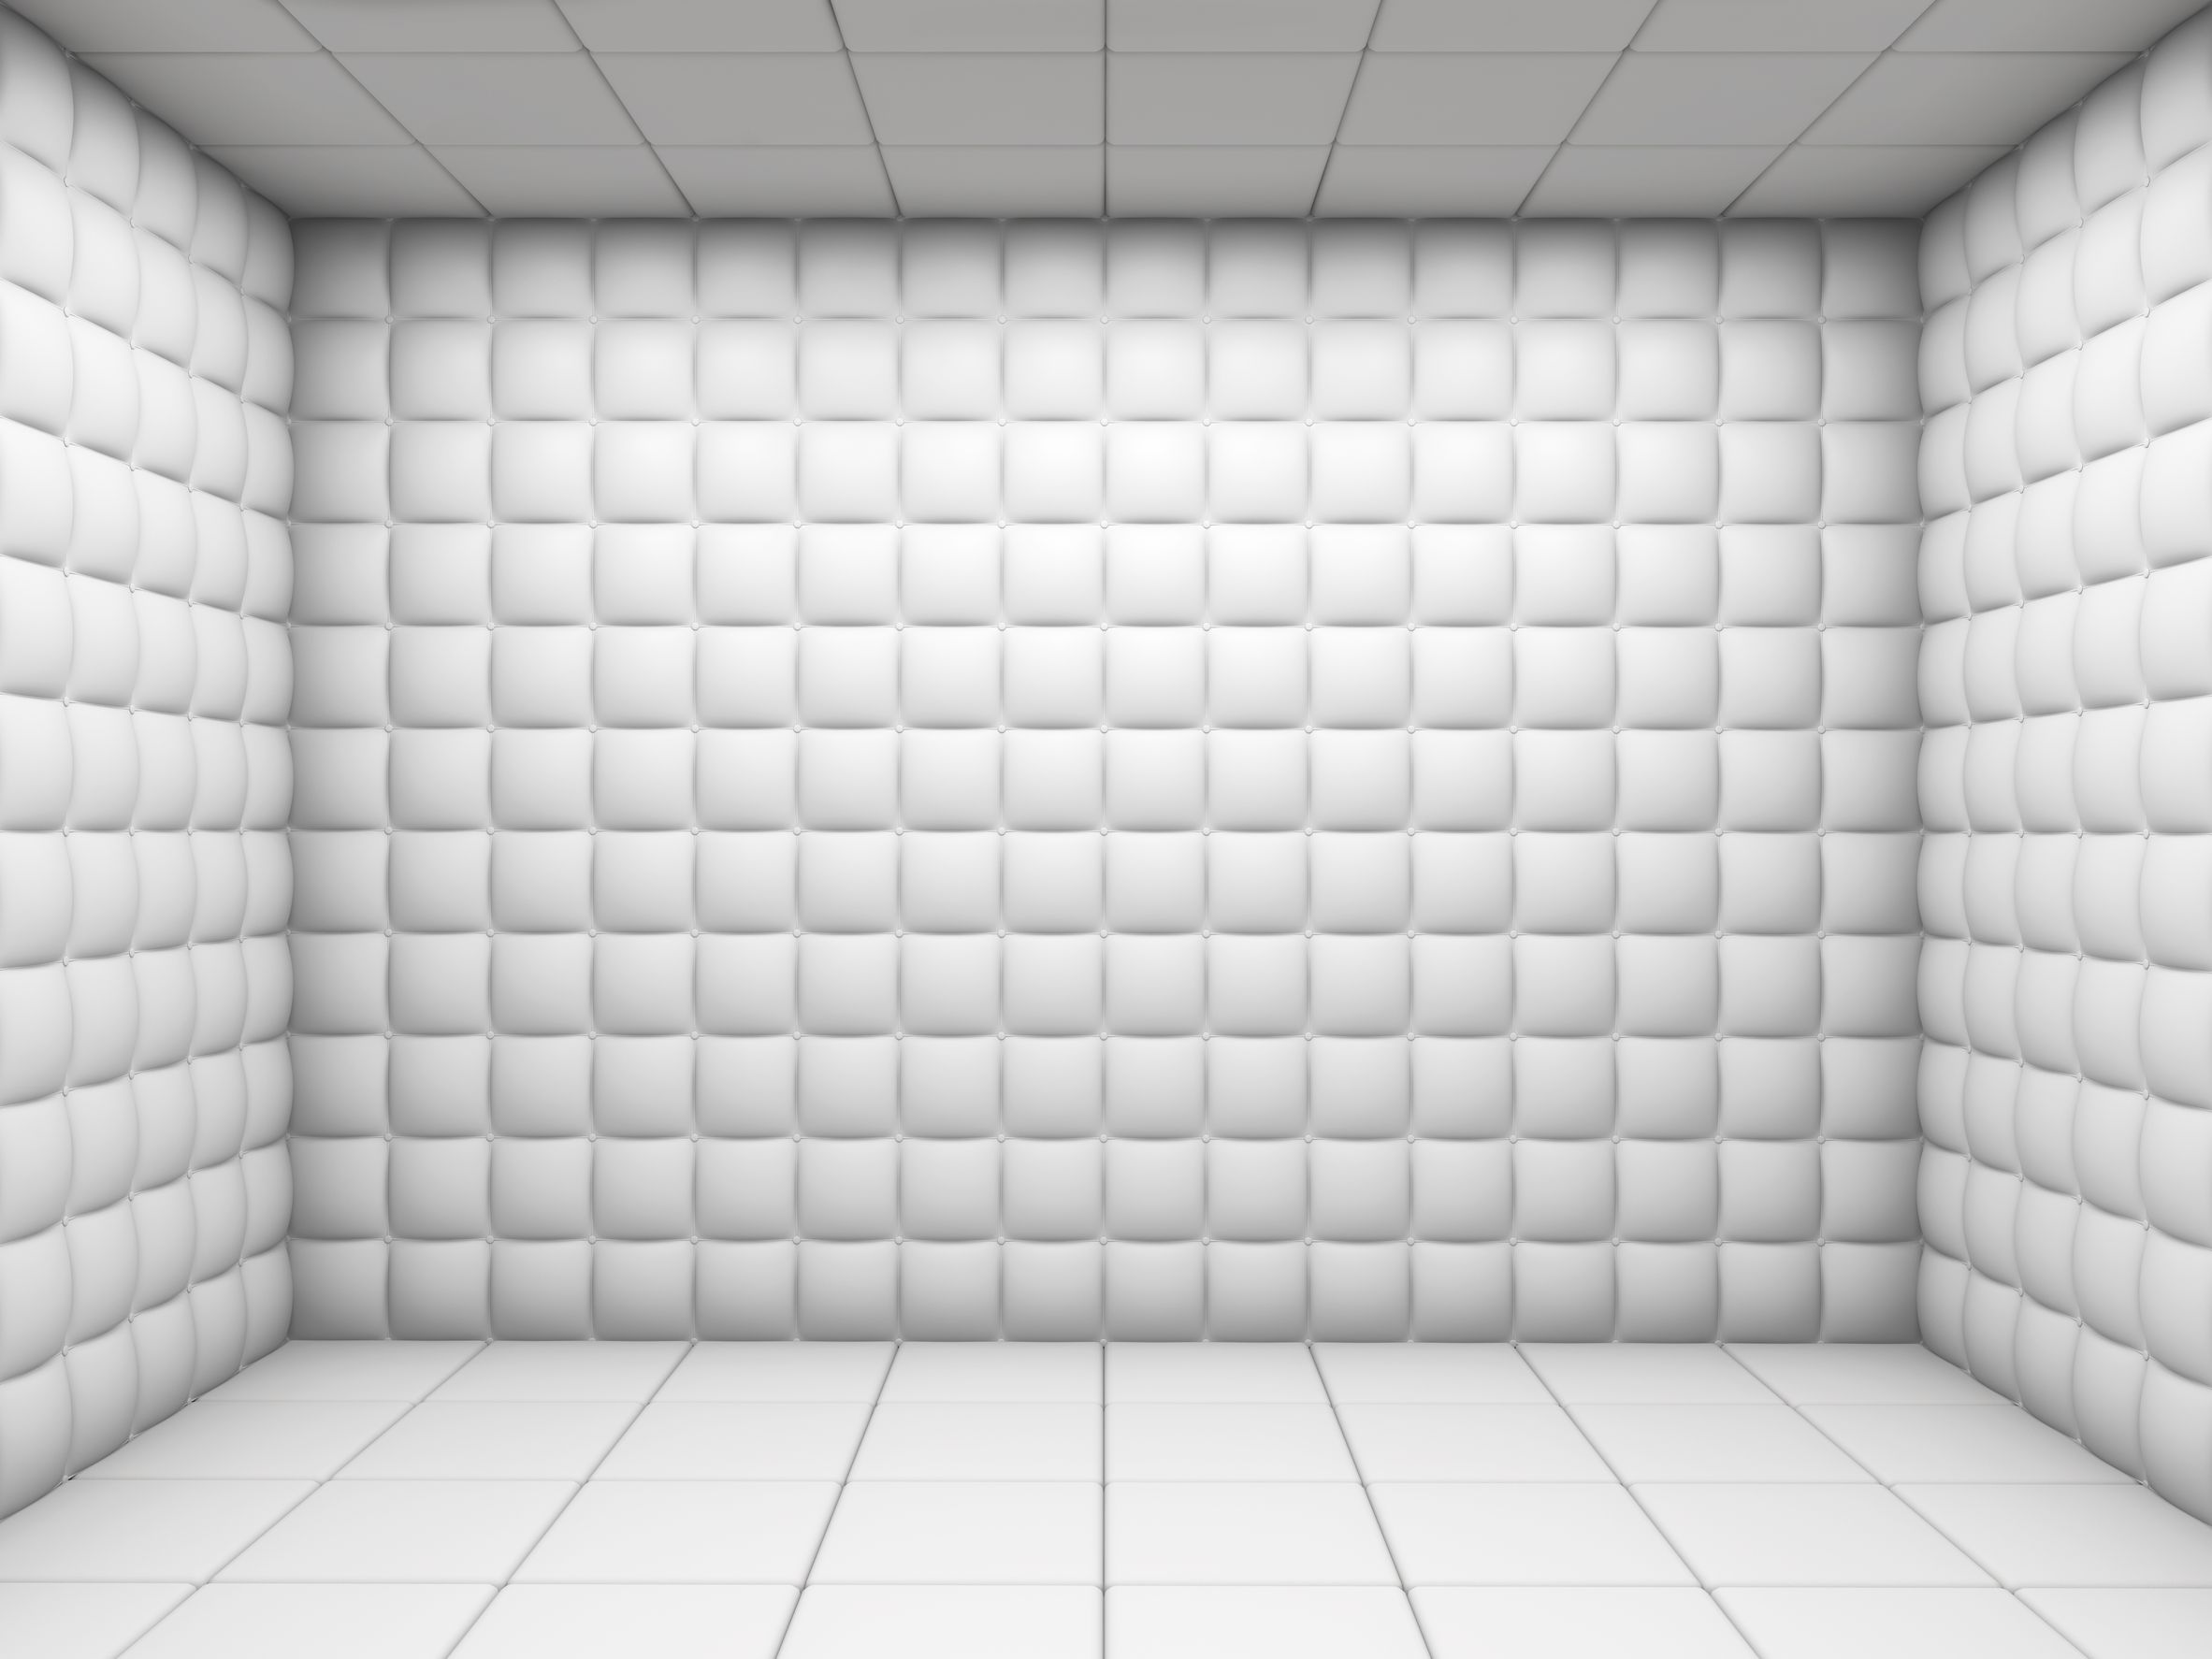 11755382 - white mental hospital padded room empty with copy space